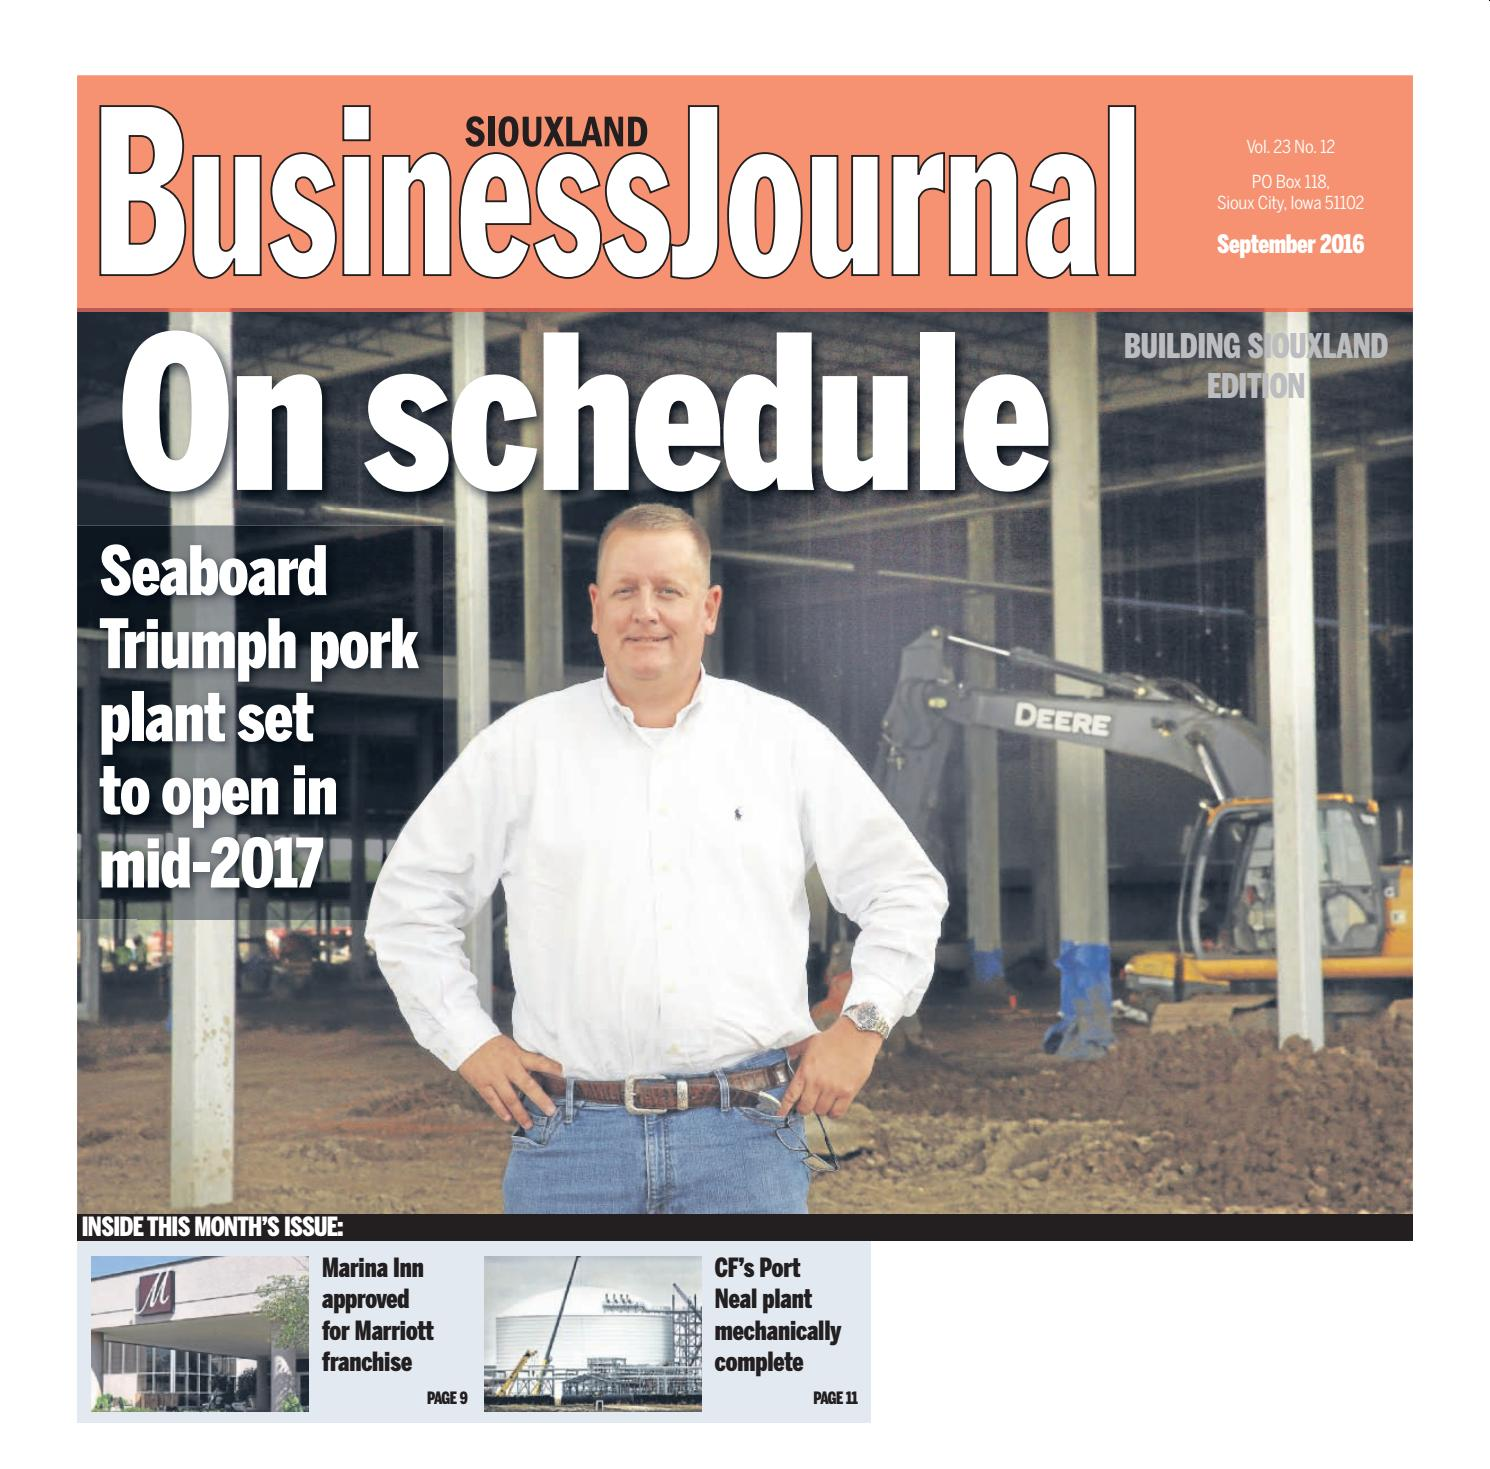 siouxland business journal september 2016 by sioux city journal